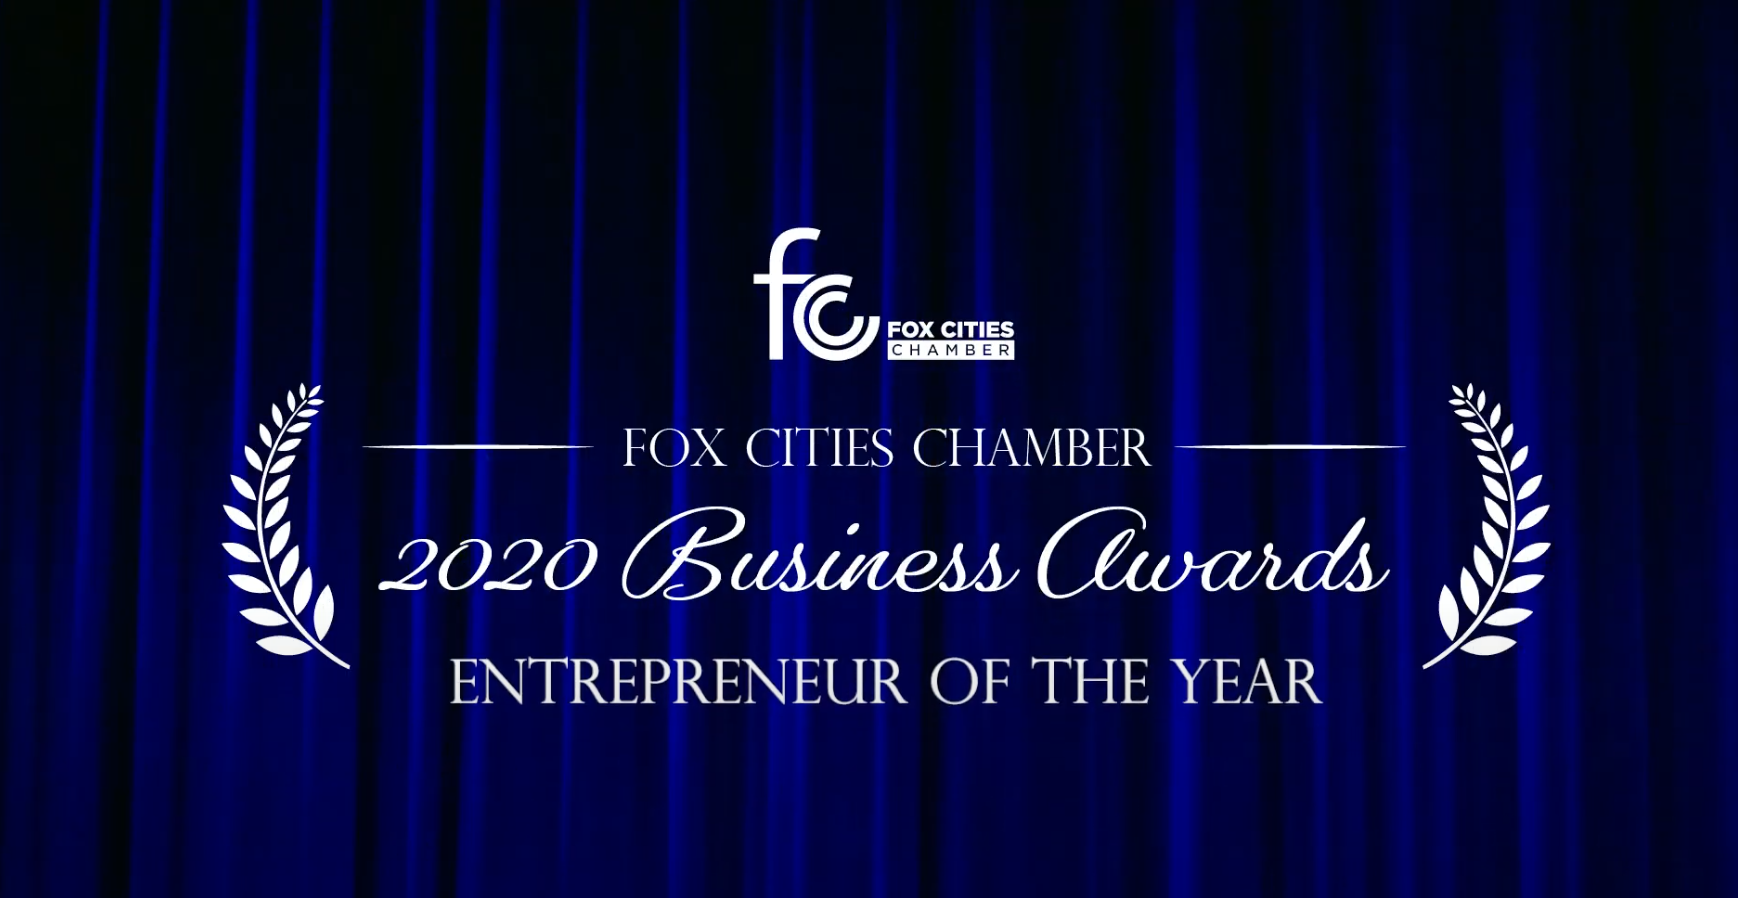 Patti Purcell Named 2020 Entrepreneur of the Year by Fox Cities Chamber of Commerce